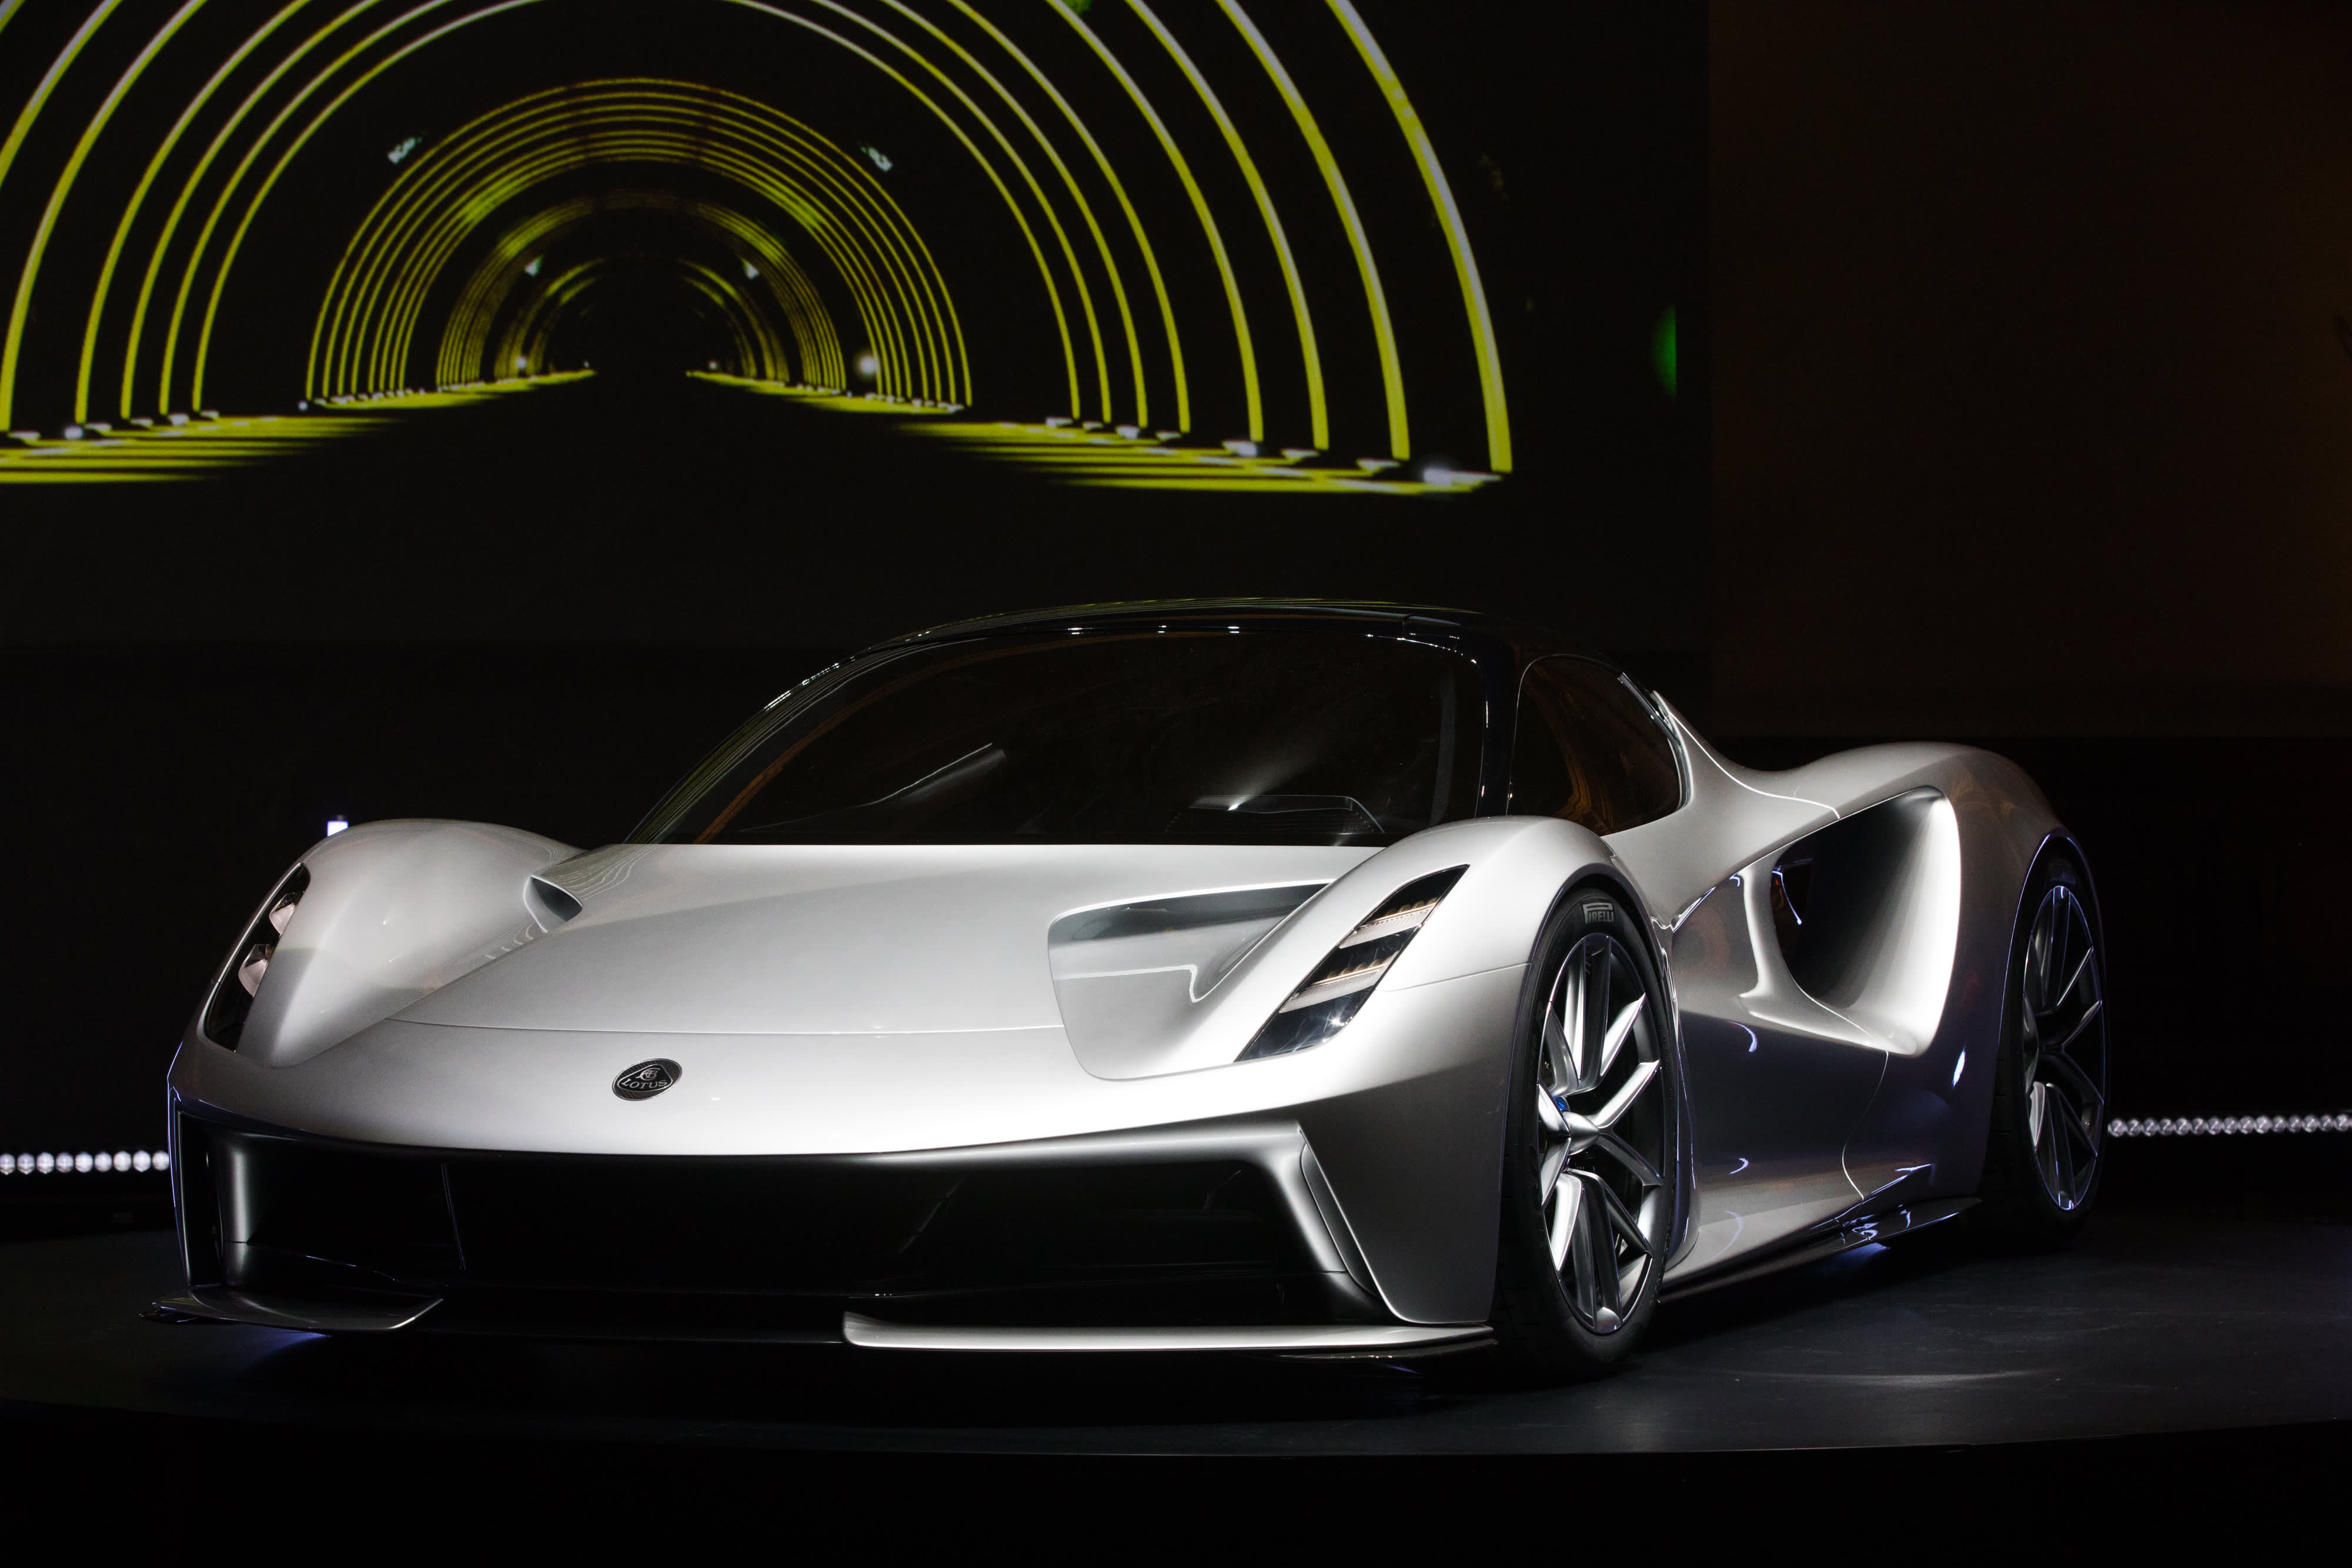 Lotus ups the ante on the electric hypercar with the Evija: 2,000 hp, 200 mph at $2 million